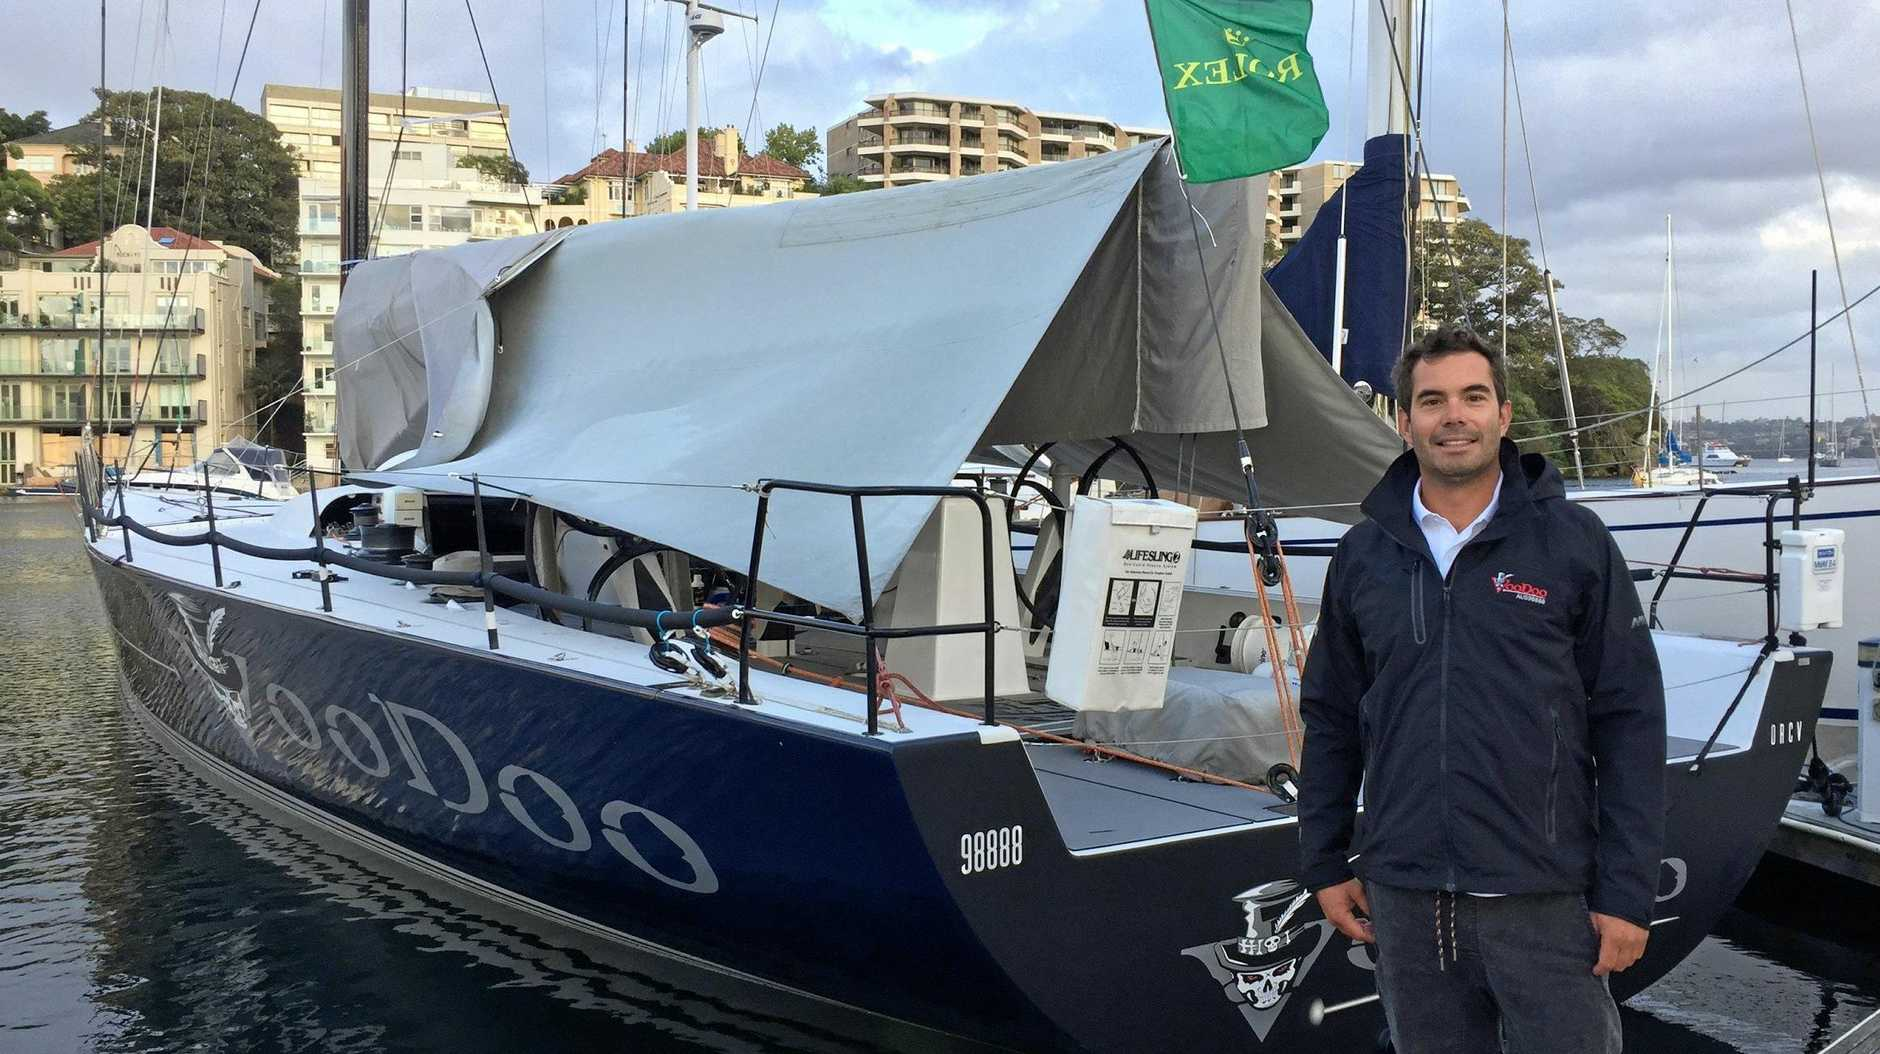 SET TO SAIL: Tim Grant and Voodoo.